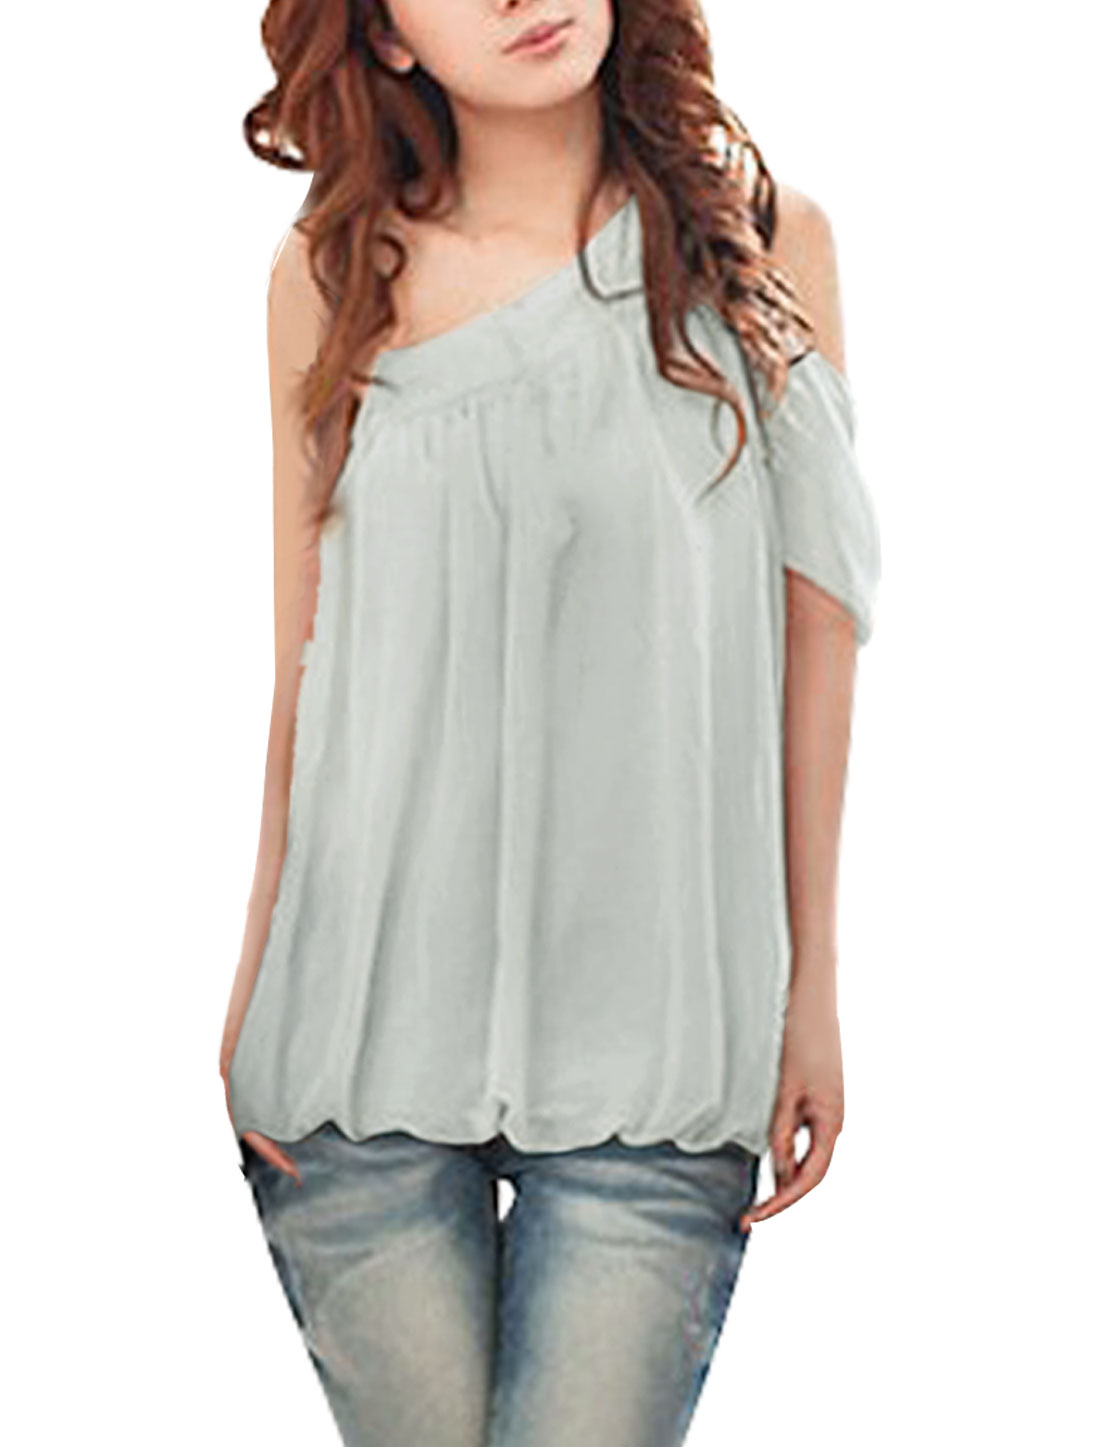 Ladies Pale Gray Semi Sheer Cut Out Shoulder Summer Chiffon Blouse M